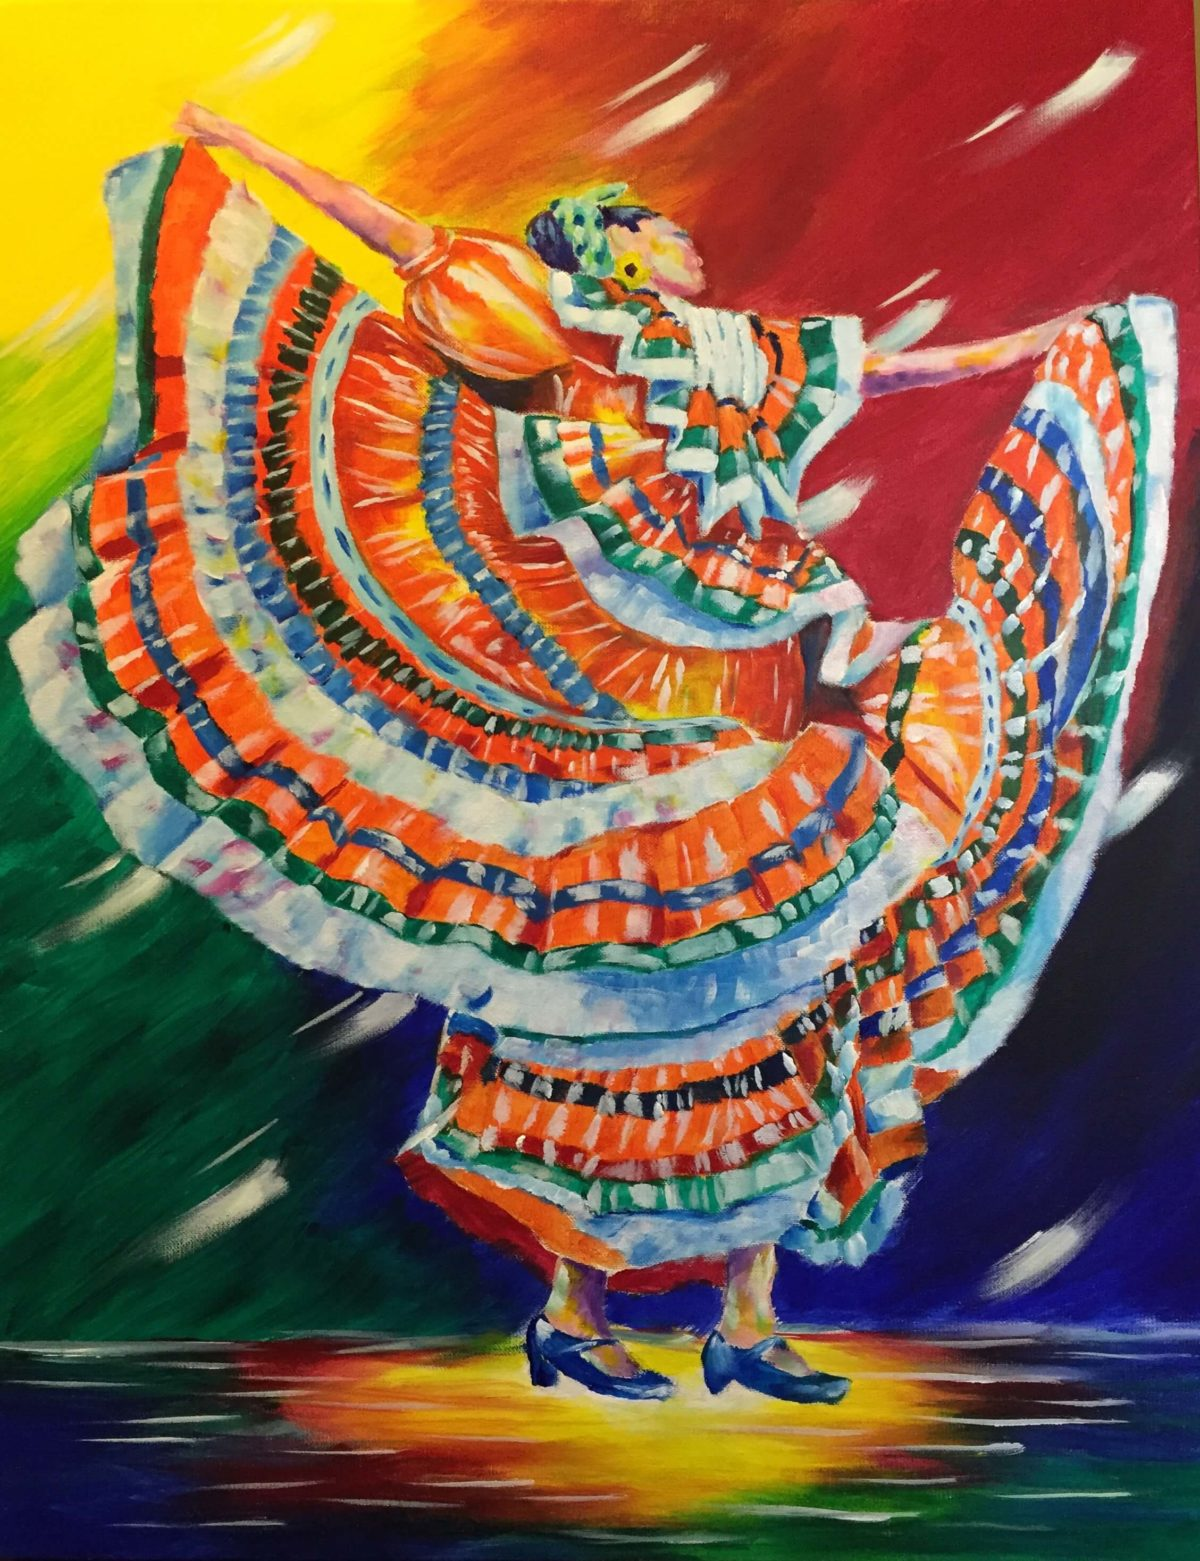 Chicana 22x28 Acrylic on Canvas by Taylor Wise